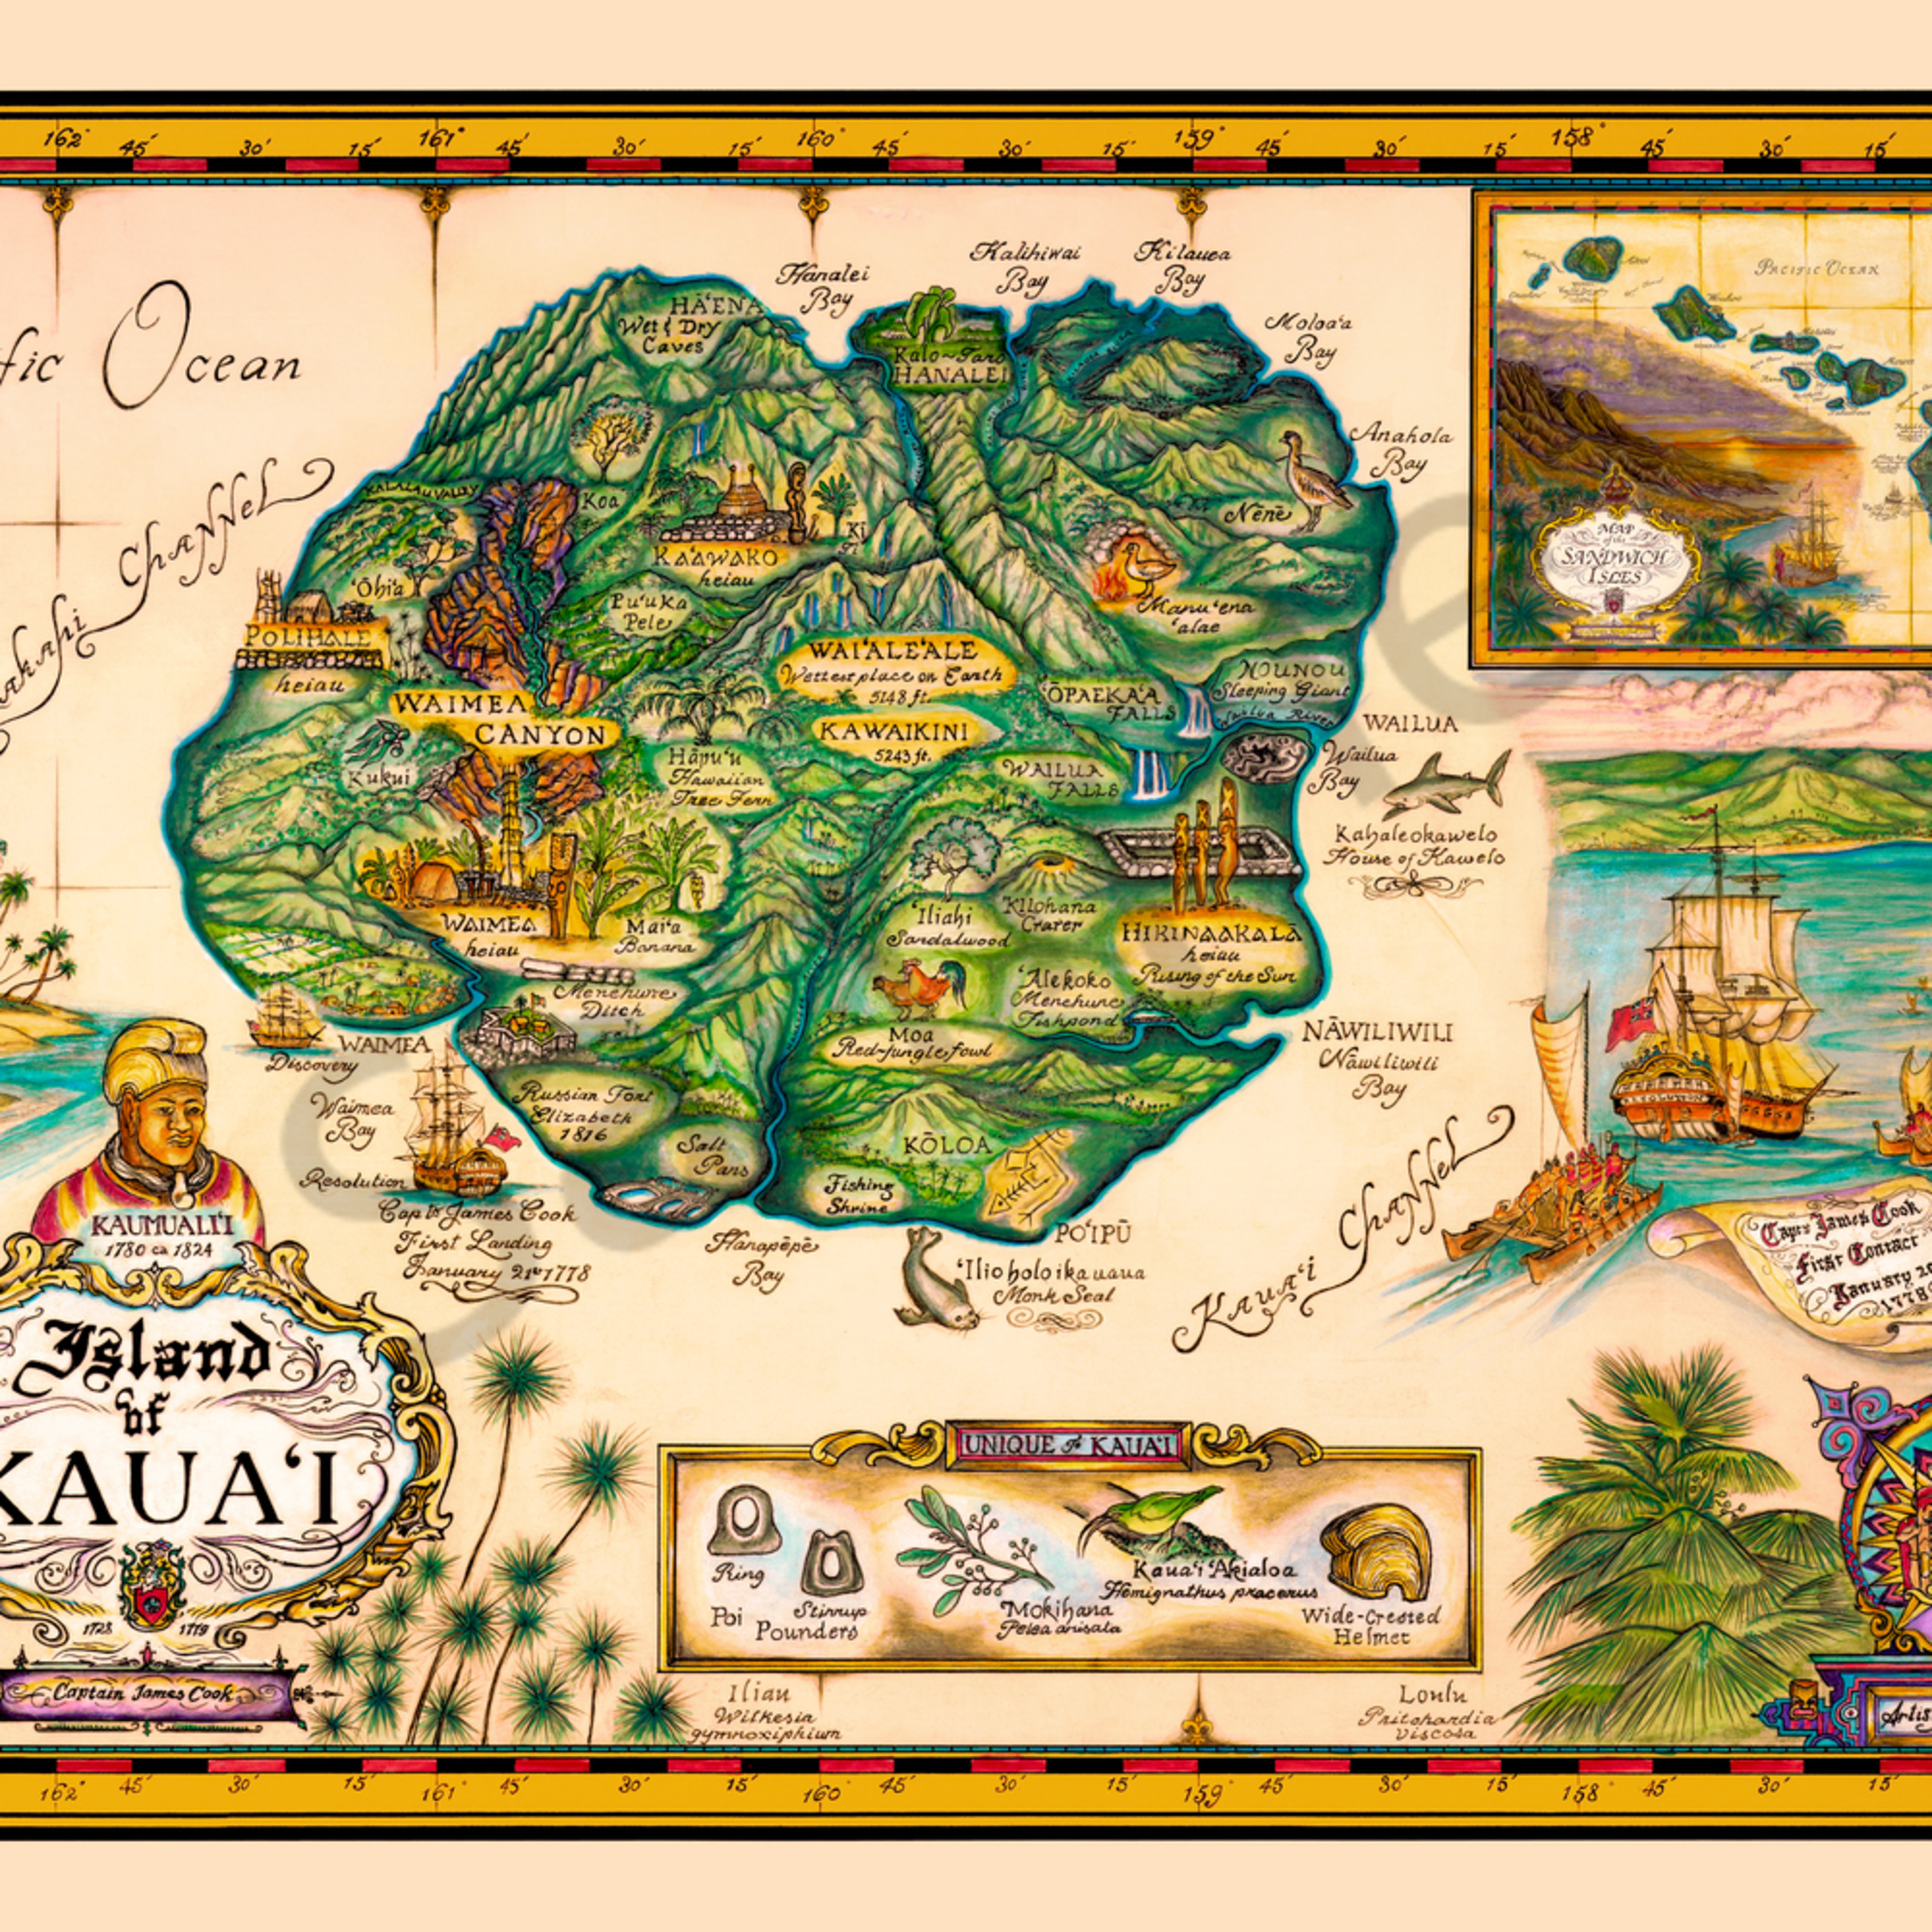 Historical Maps Map Of Kauai By Blaise Domino